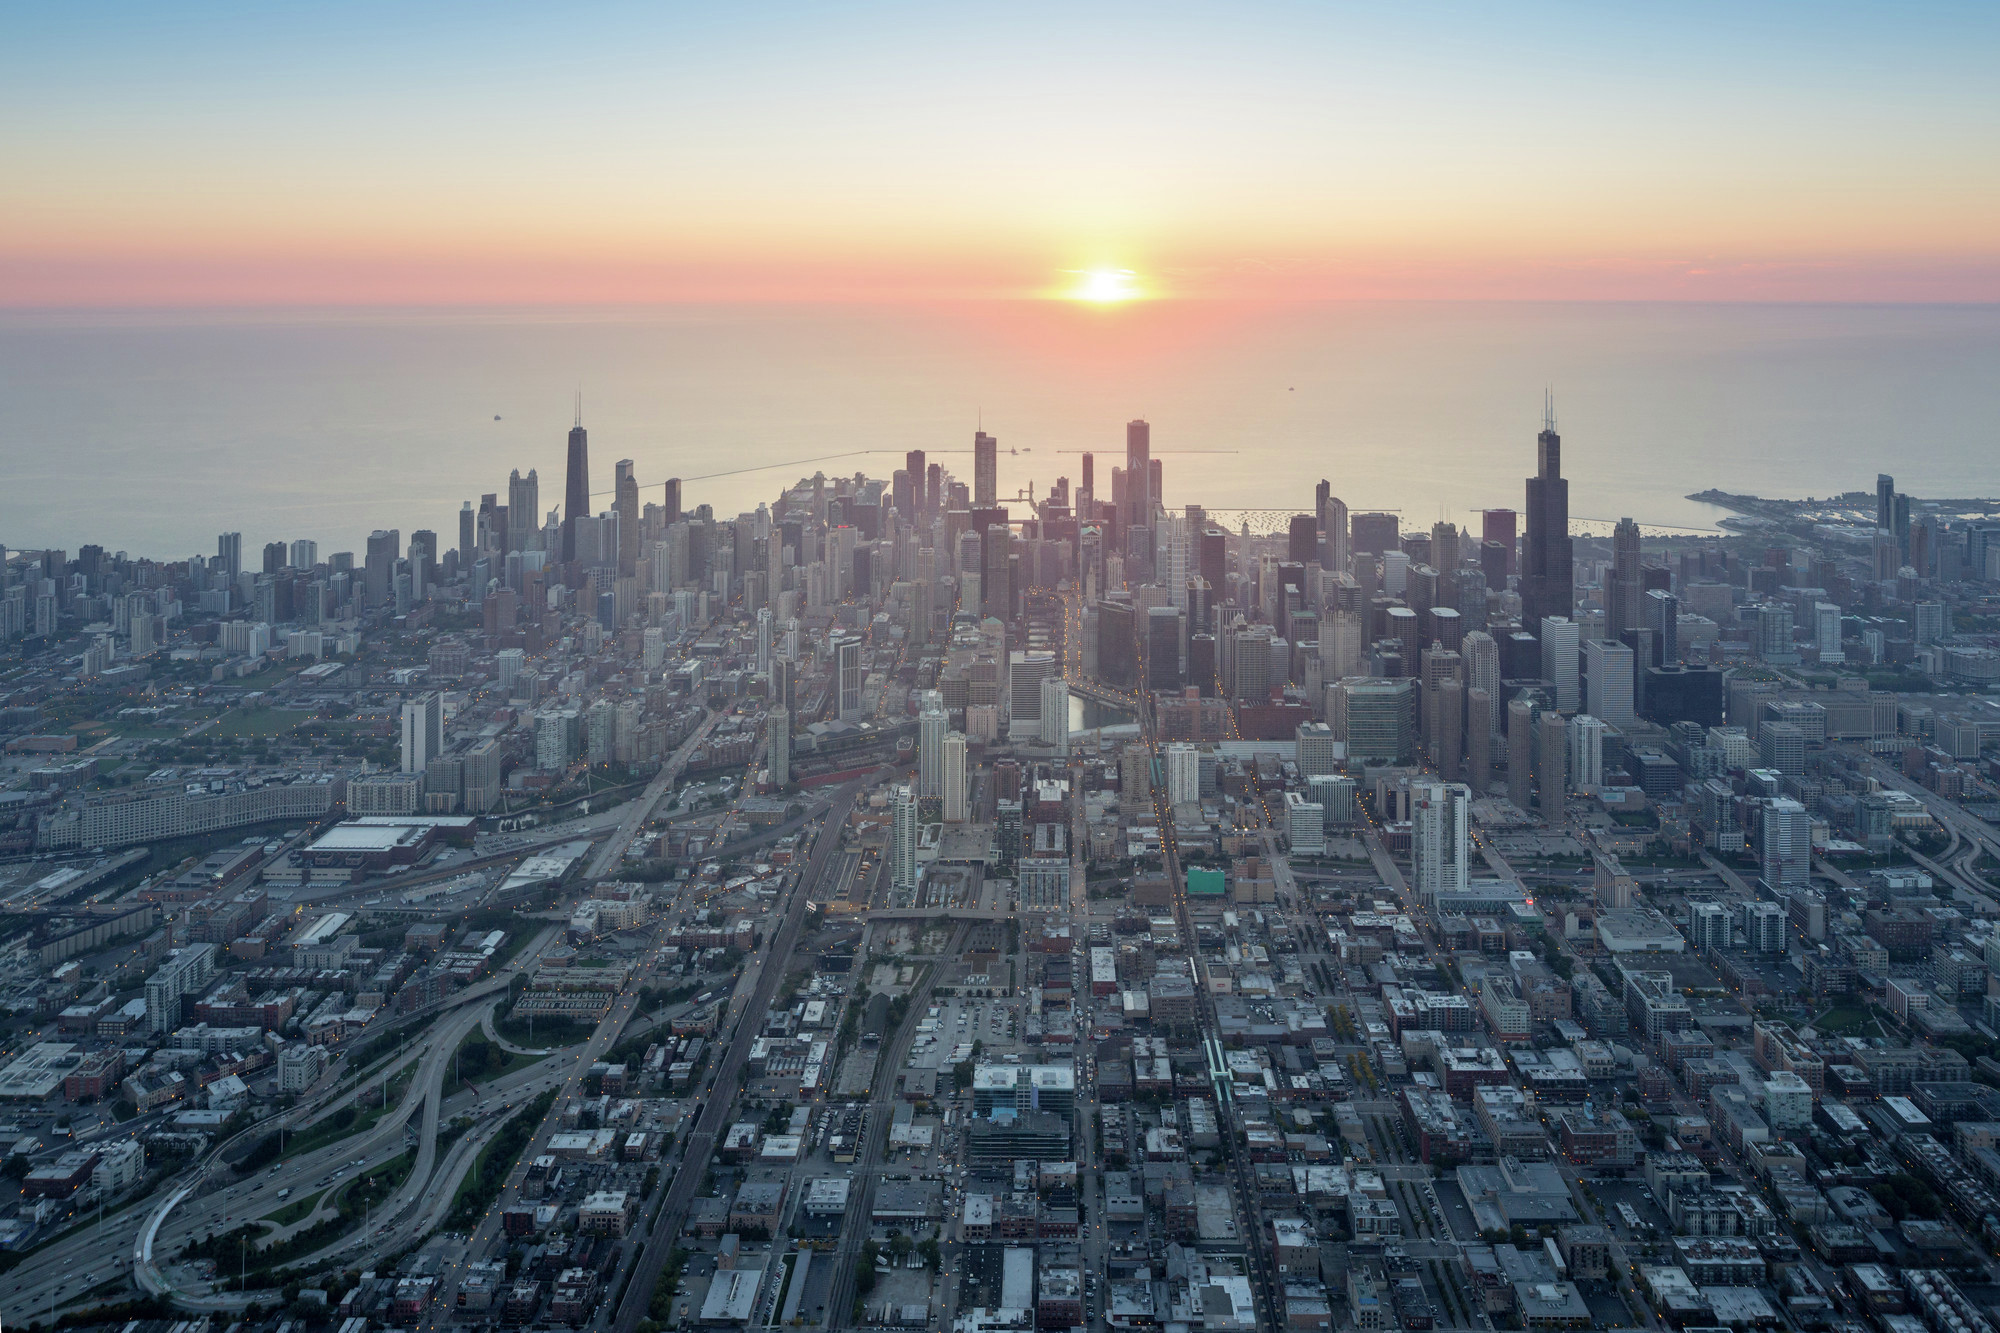 patrik schumacher tag archdaily an image from iwan baan s chicago photo essay image acirccopy iwan baan